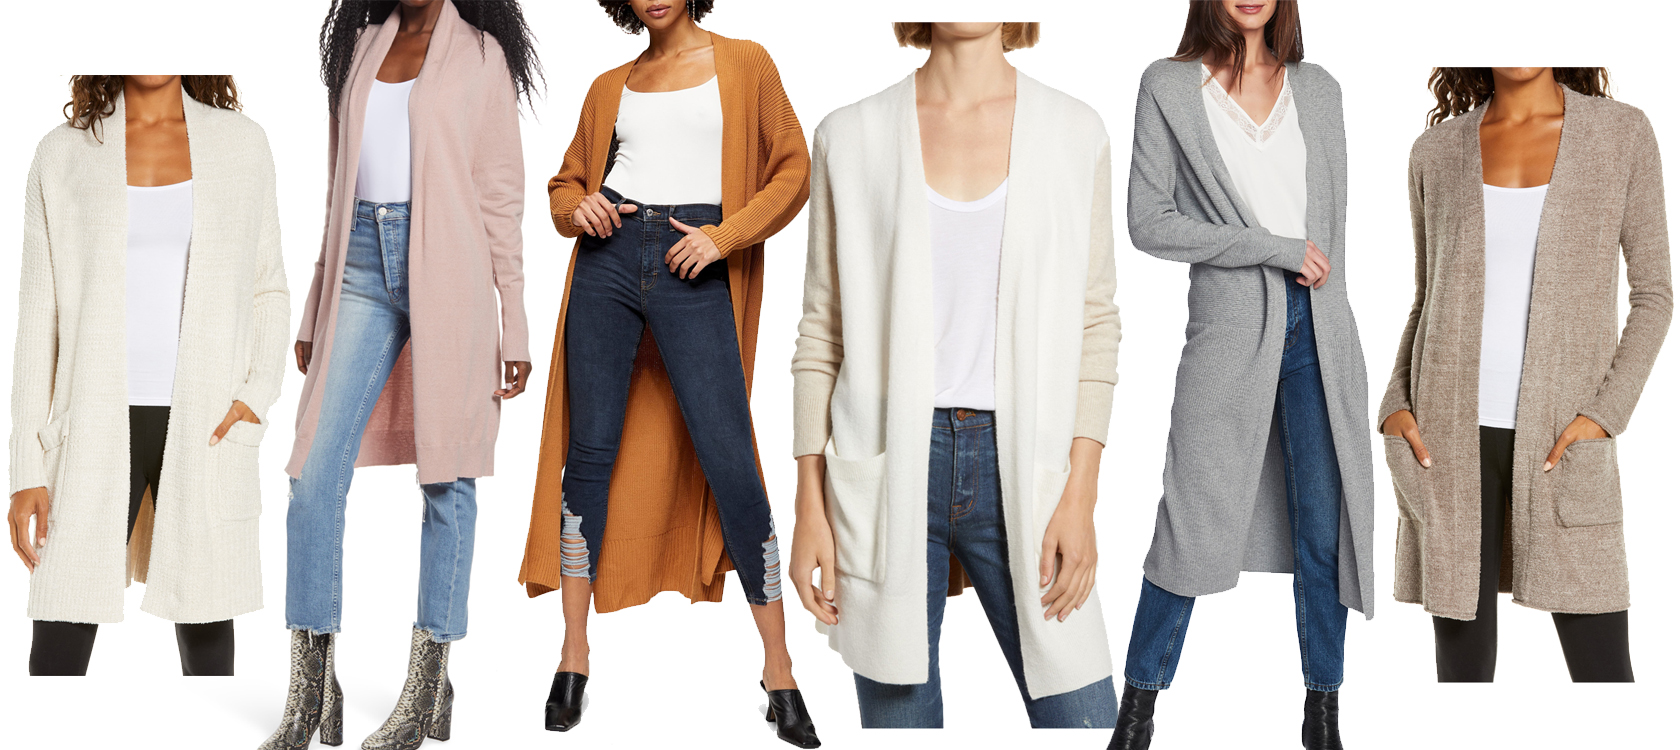 what to buy nordstrom anniversary sale cardigan shopping guide